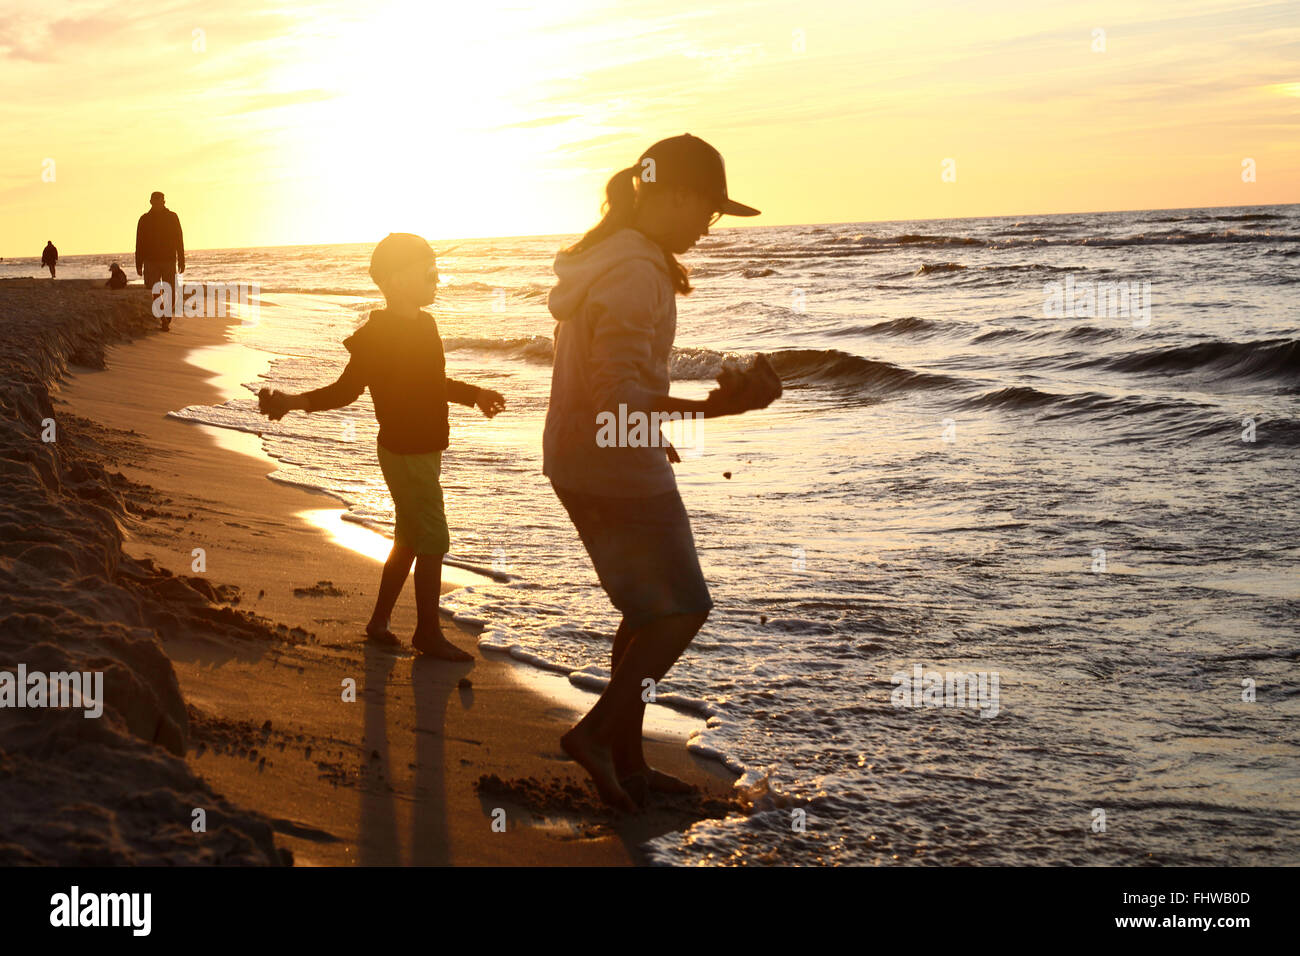 Walking on the beach, sunset. Children boy and girl playing on the sea shore on a sandy beach during sunset - Stock Image